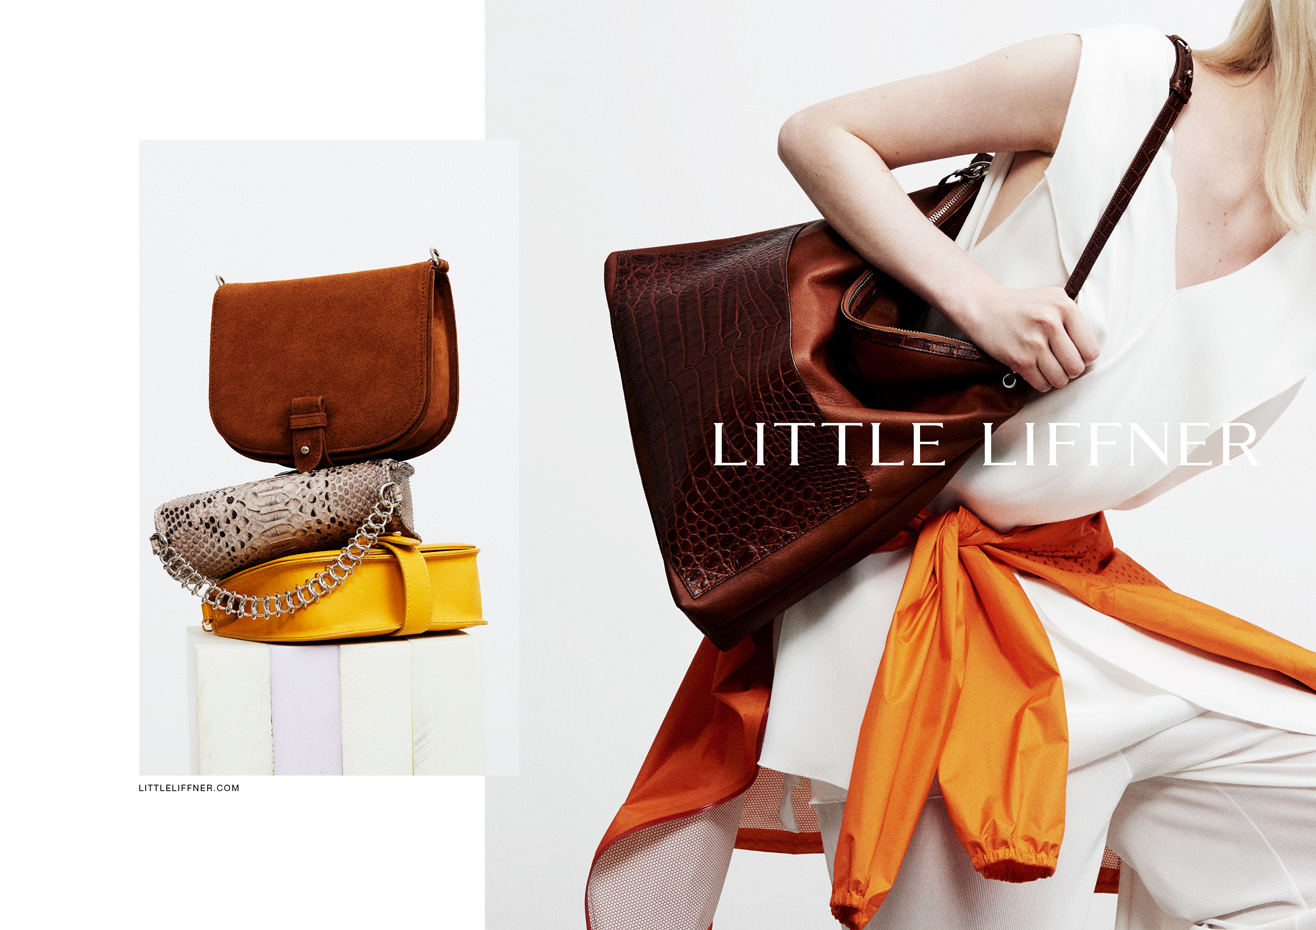 Little Lifner AW 17 Campaign